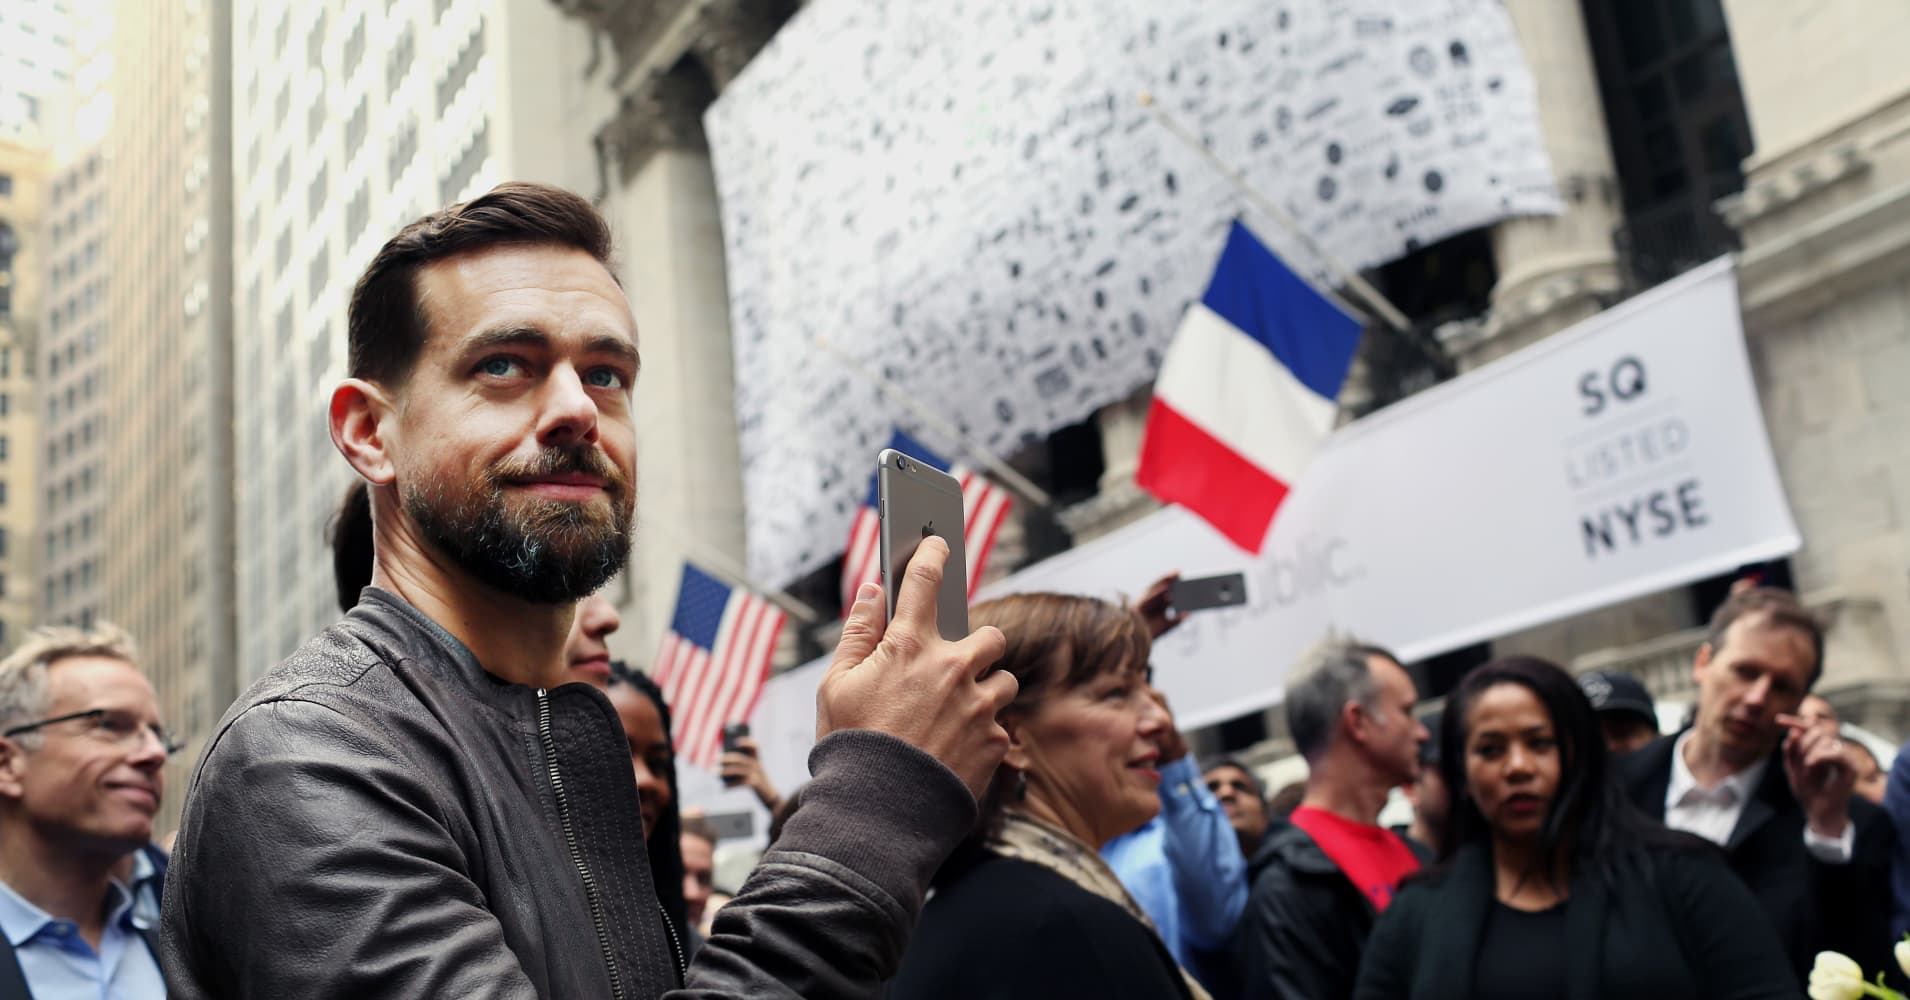 Jack Dorsey, CEO of Square Inc., holds an Apple Inc. iPhone while standing outside of the New York Stock Exchange (NYSE) in New York, U.S., on Thursday, Nov. 19, 2015.